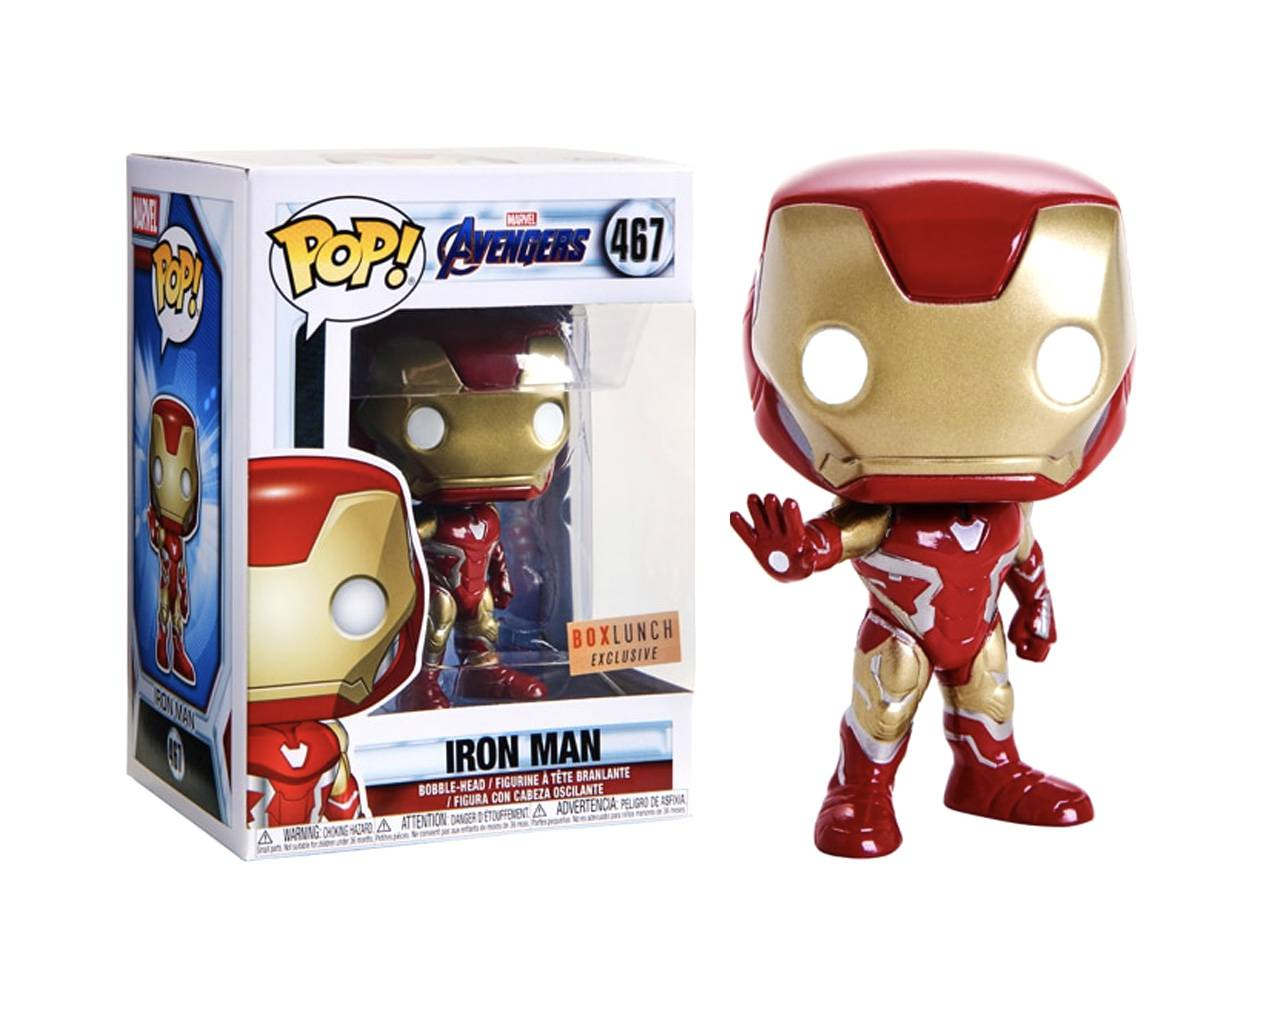 Iron Man (Endgame) Pop! Vinyl